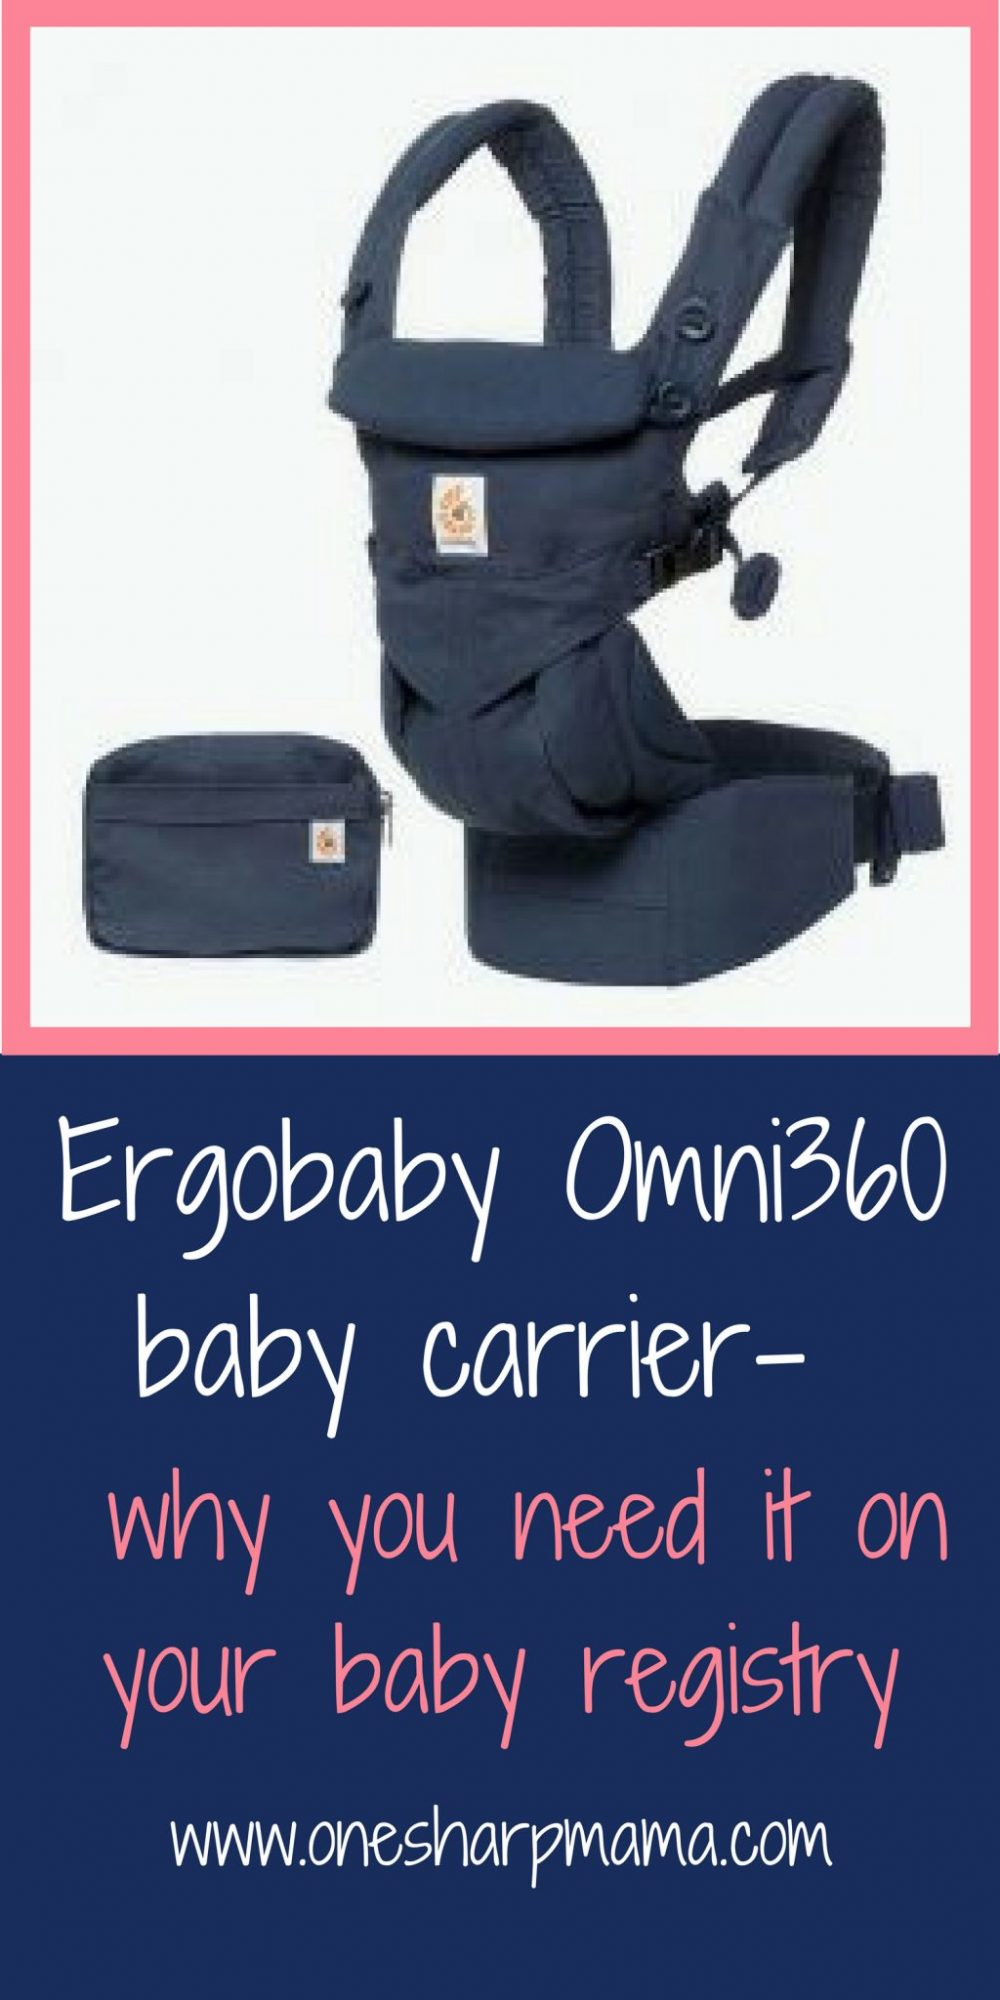 Benefits of baby-wearing. #babywear with confidence #lovecarrieson #ergobaby